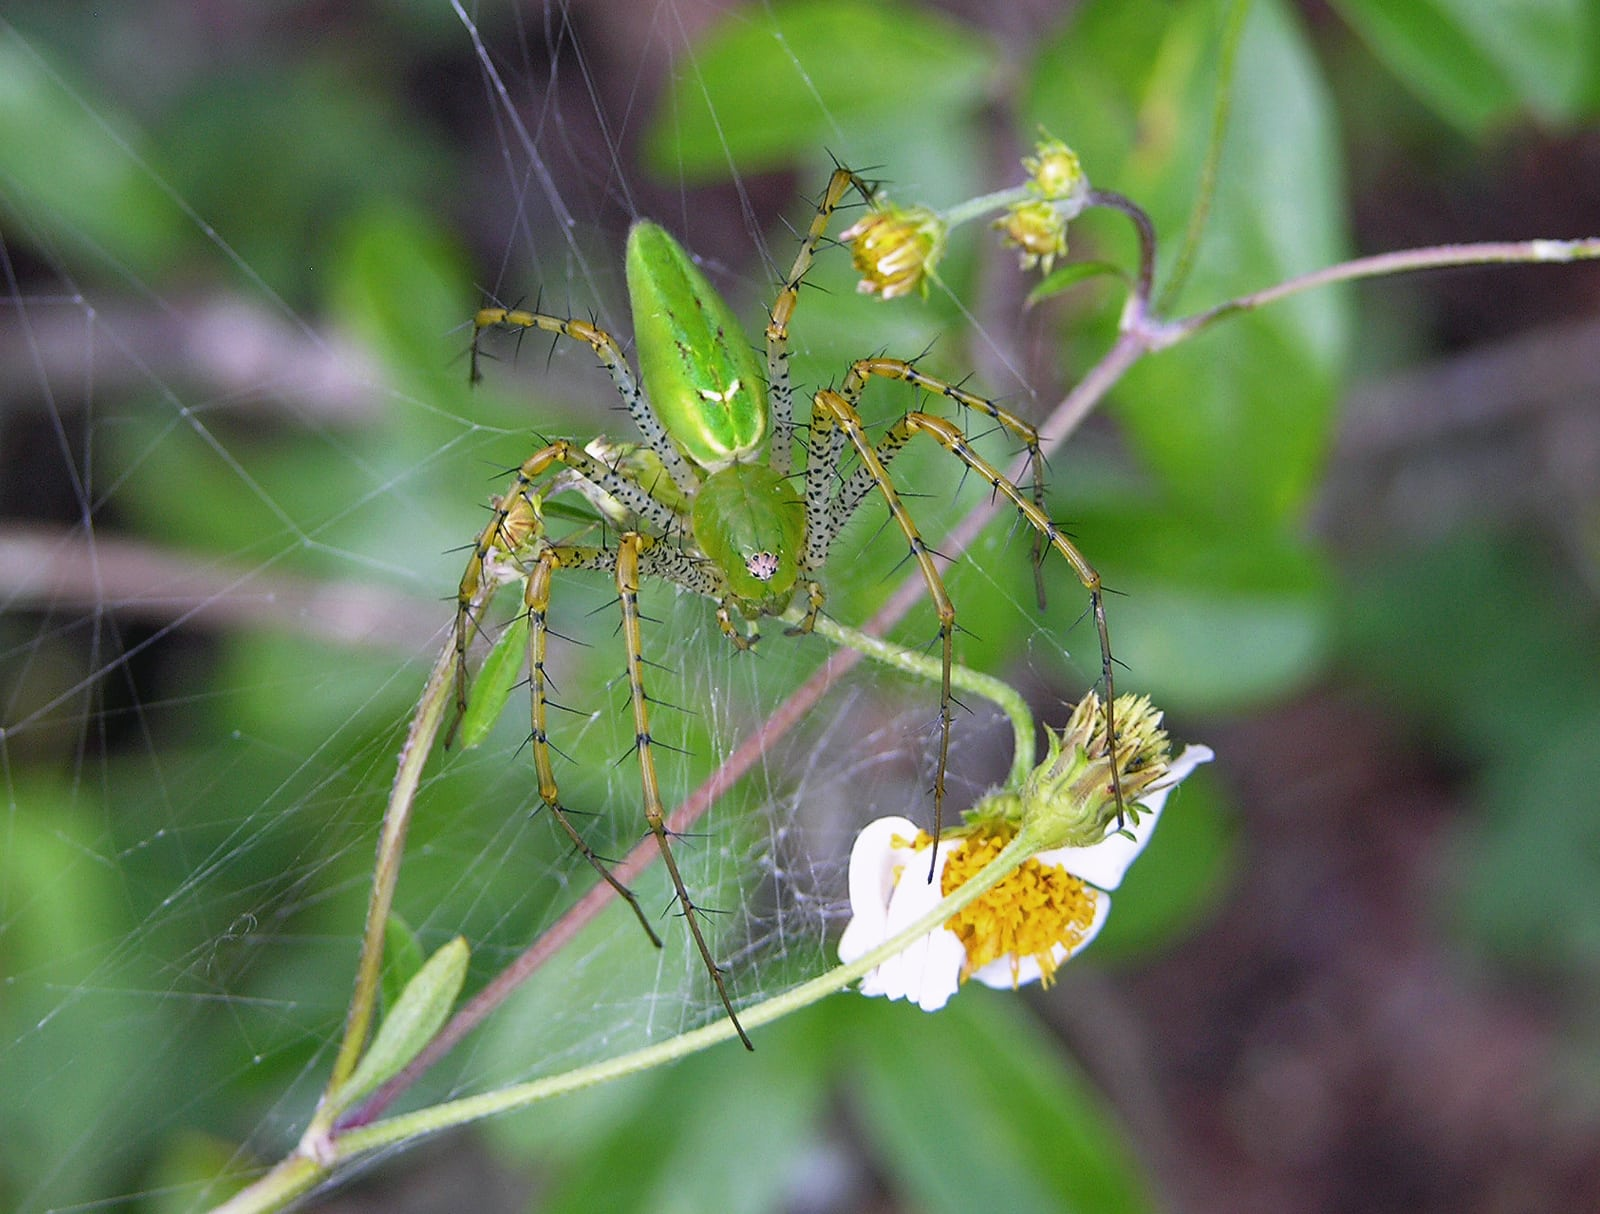 Picture of Peucetia viridans (Green Lynx Spider) - Female - Dorsal,Webs